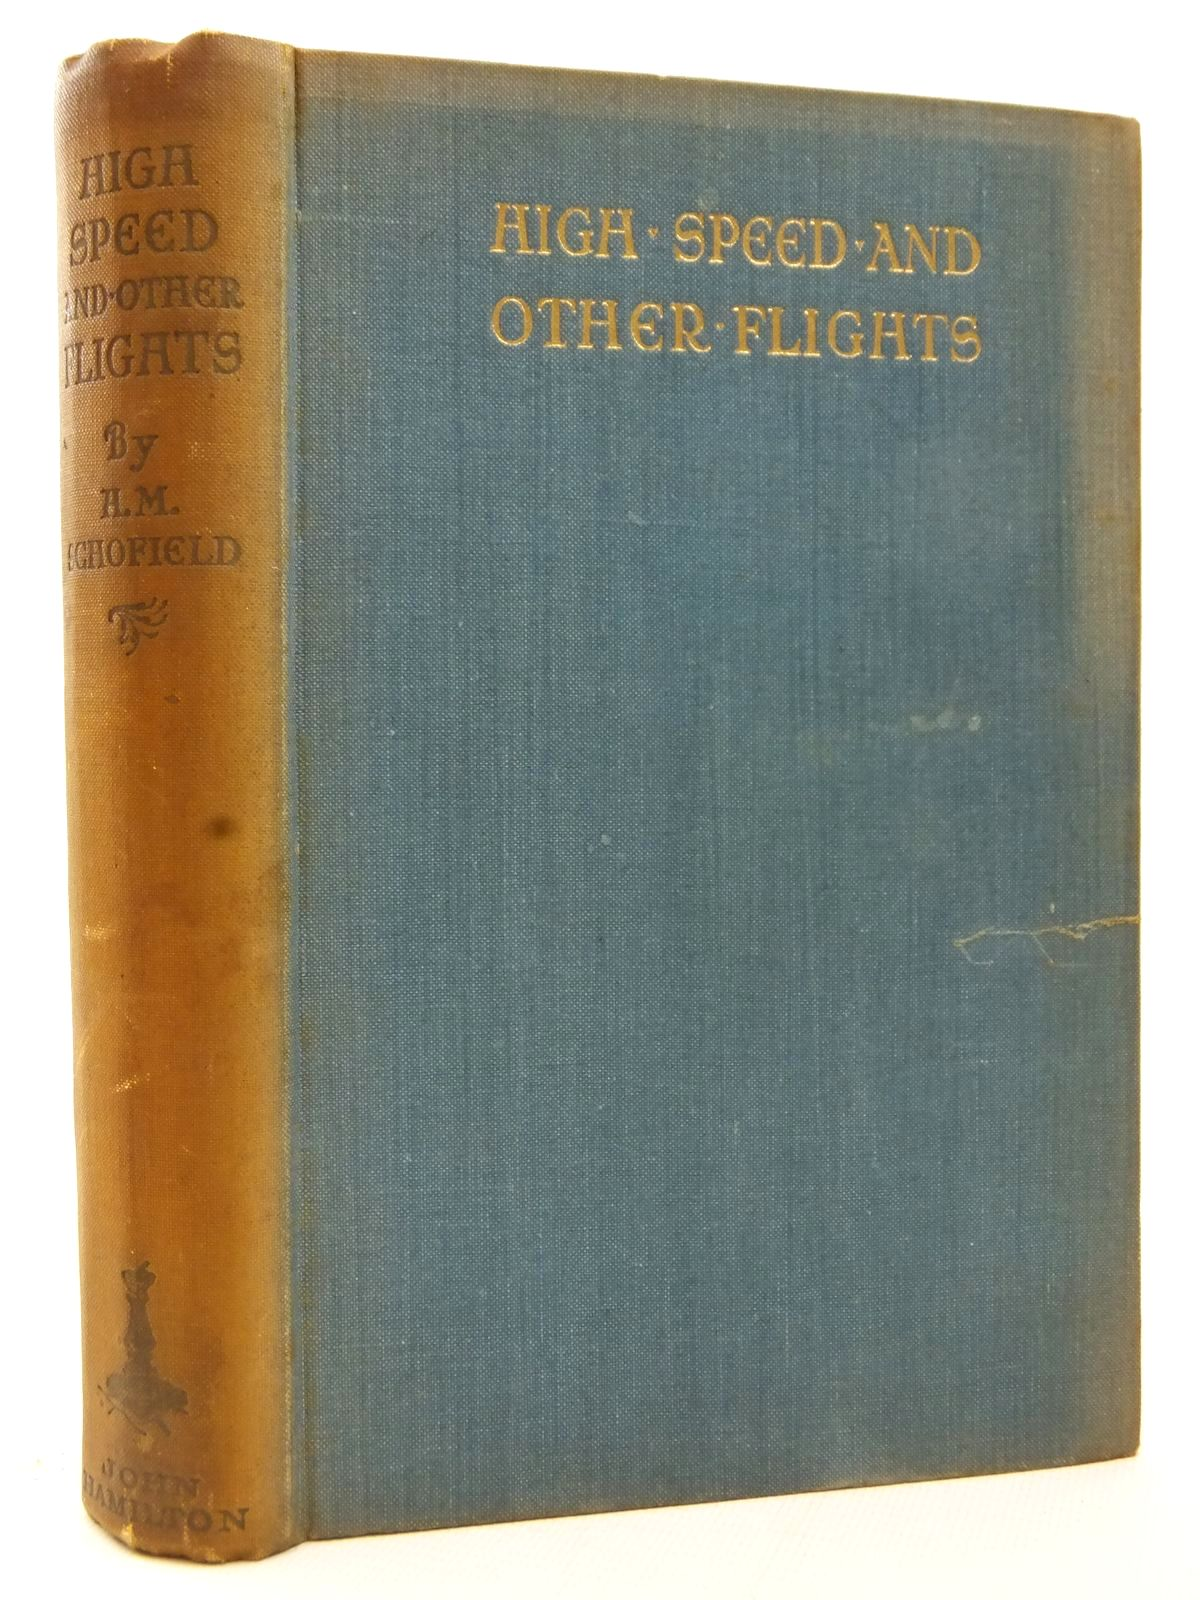 Photo of THE HIGH SPEED AND OTHER FLIGHTS written by Schofield, H.M. published by John Hamilton Ltd. (STOCK CODE: 2123170)  for sale by Stella & Rose's Books